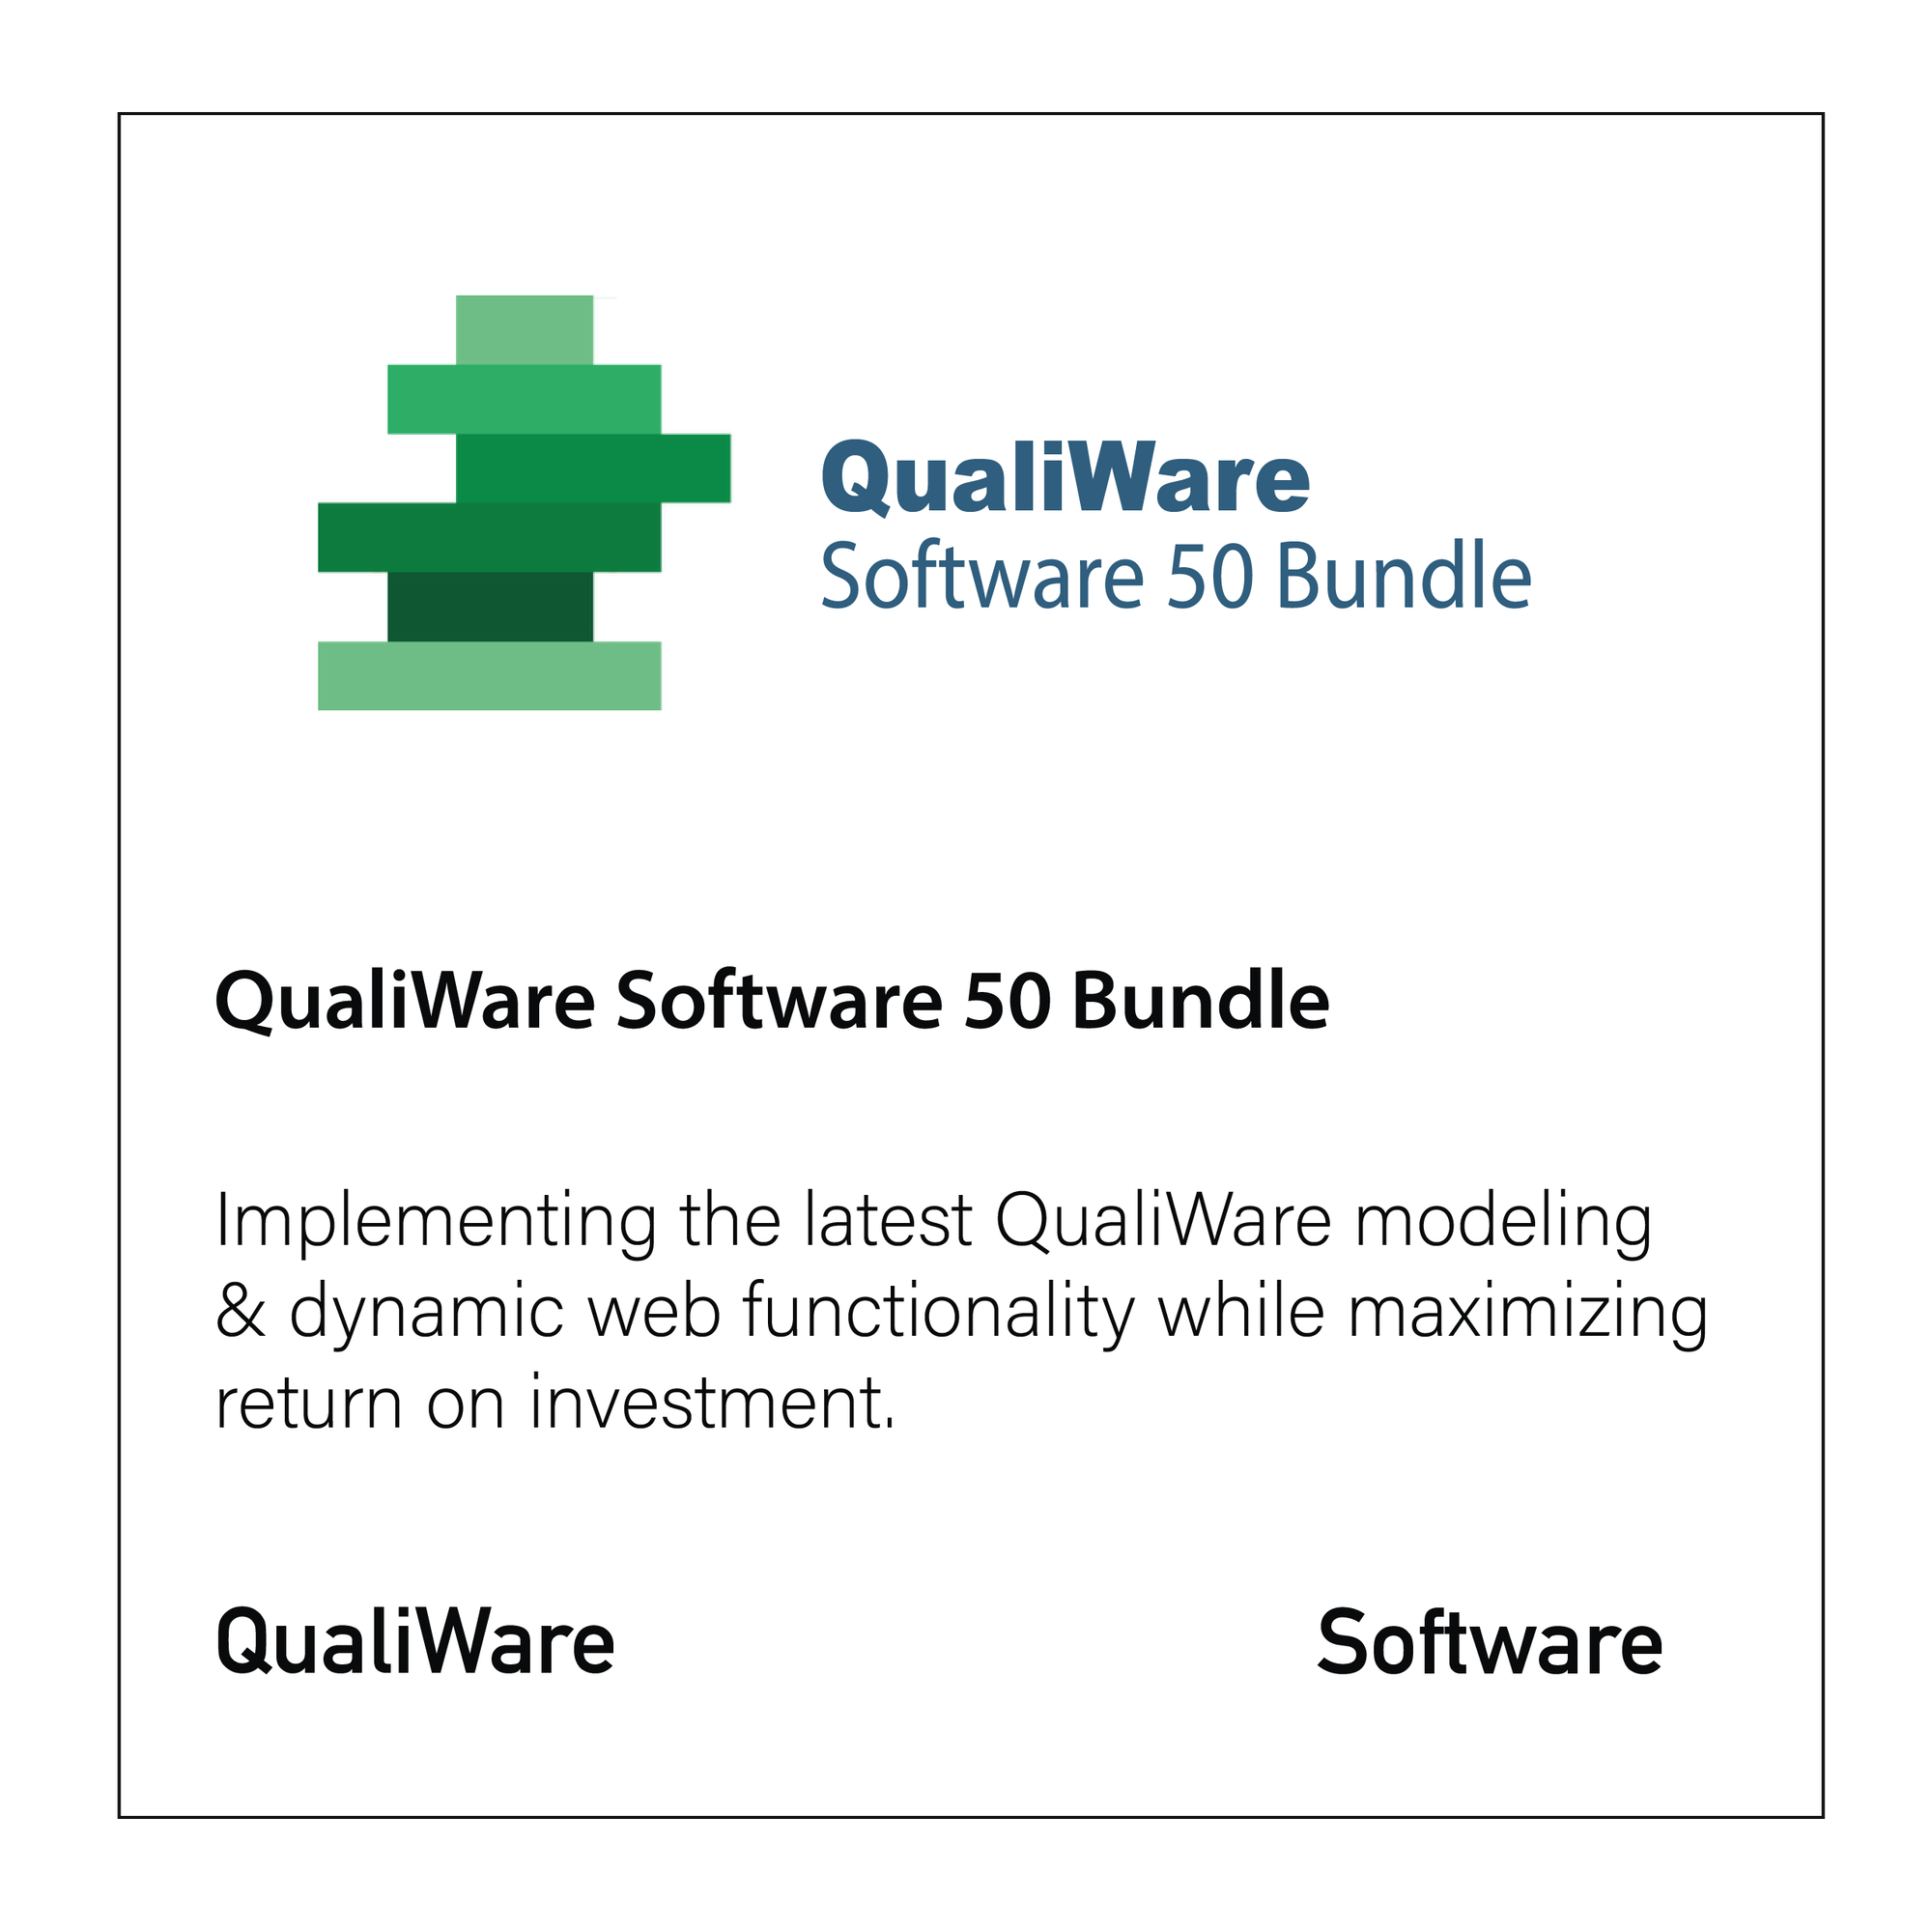 QualiWare Software 50 Bundle - CloseReach Ltd